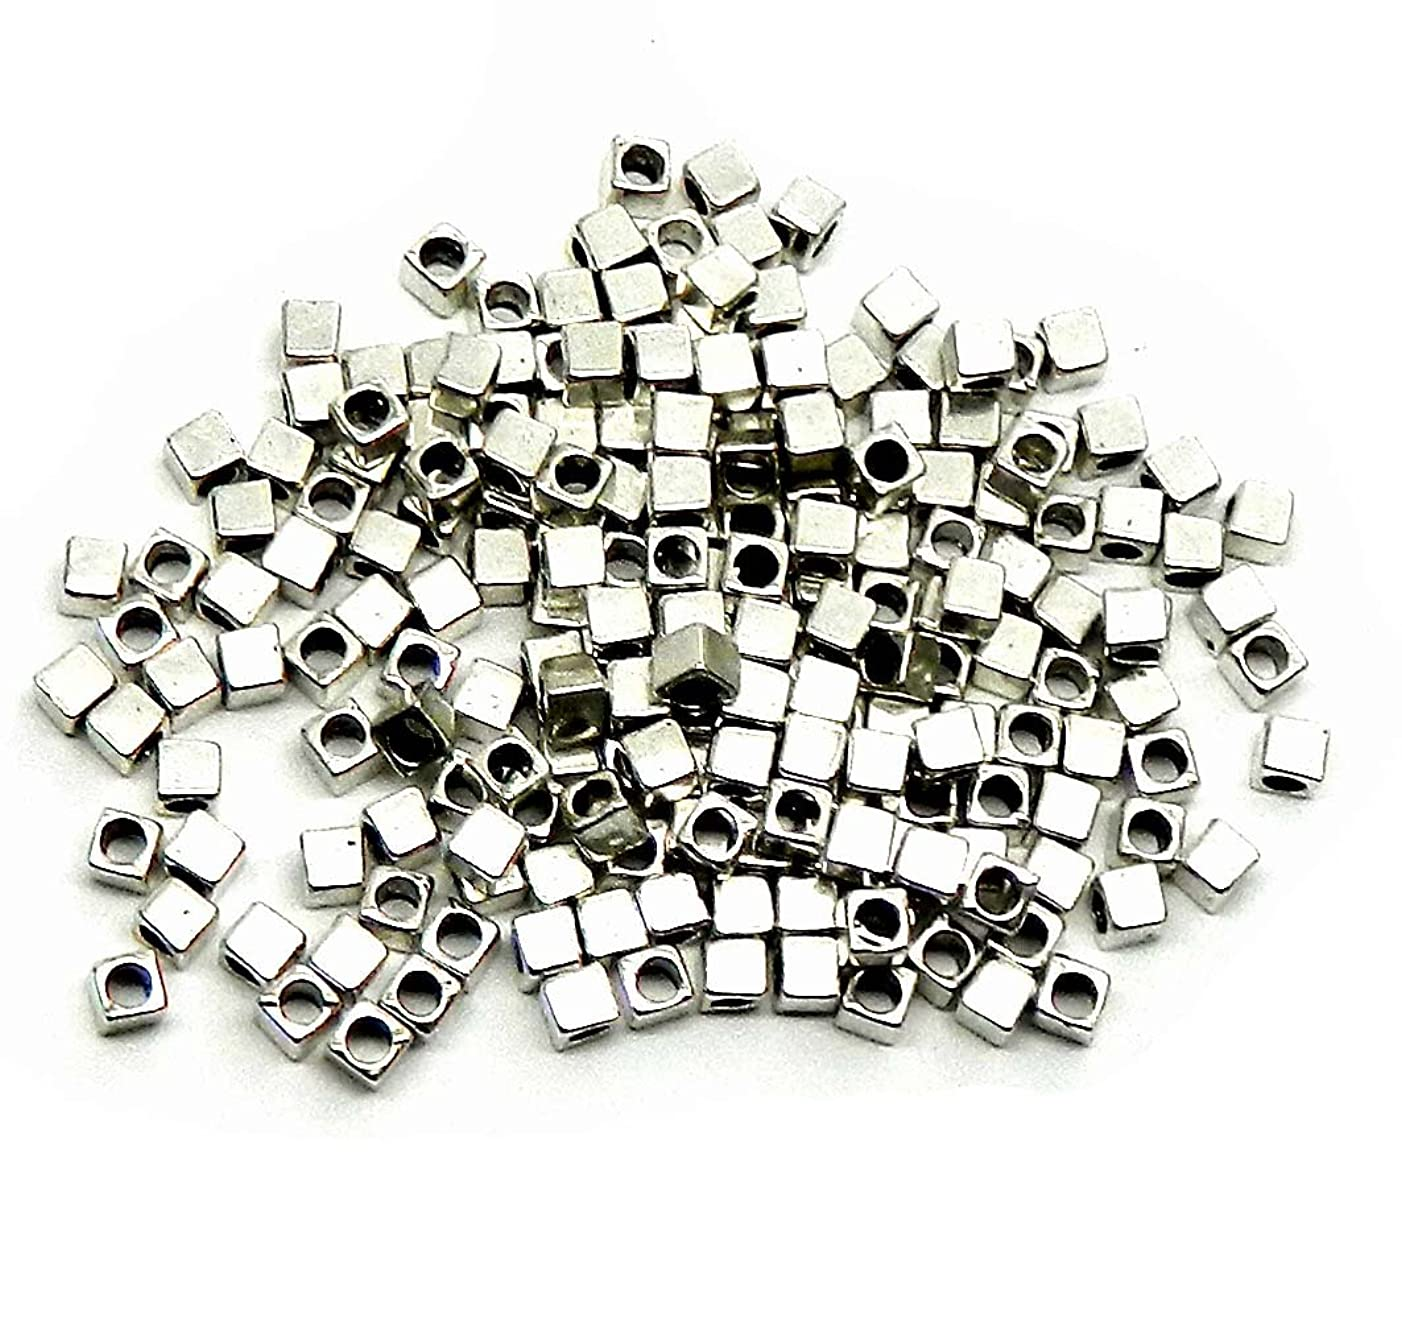 Rockin Beads Brand, 180 4x4mm Cube Antiqued Silver Beads Cast Zinc Metal Spacer Beads (Approx 2.5mm Hole)